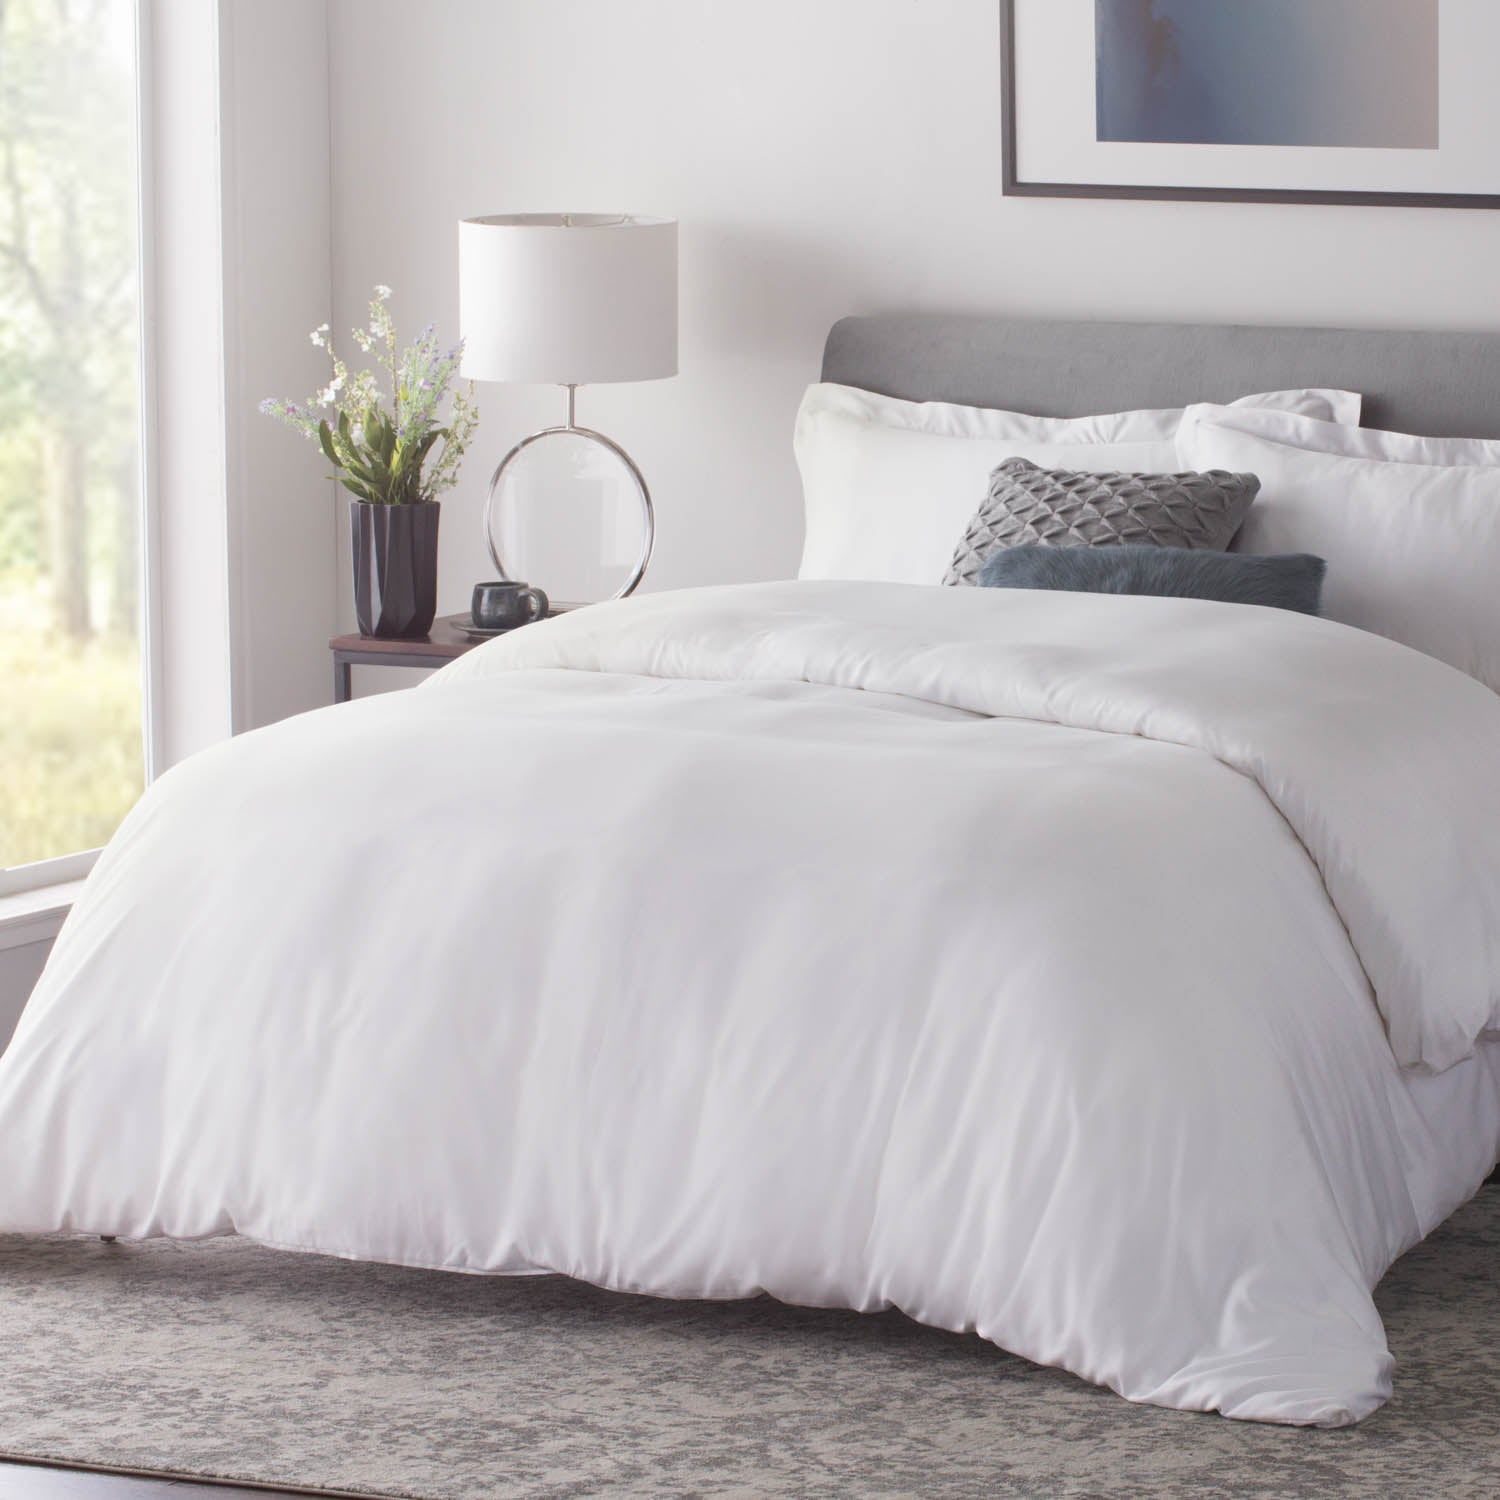 Woven- Rayon From Bamboo Duvet Set